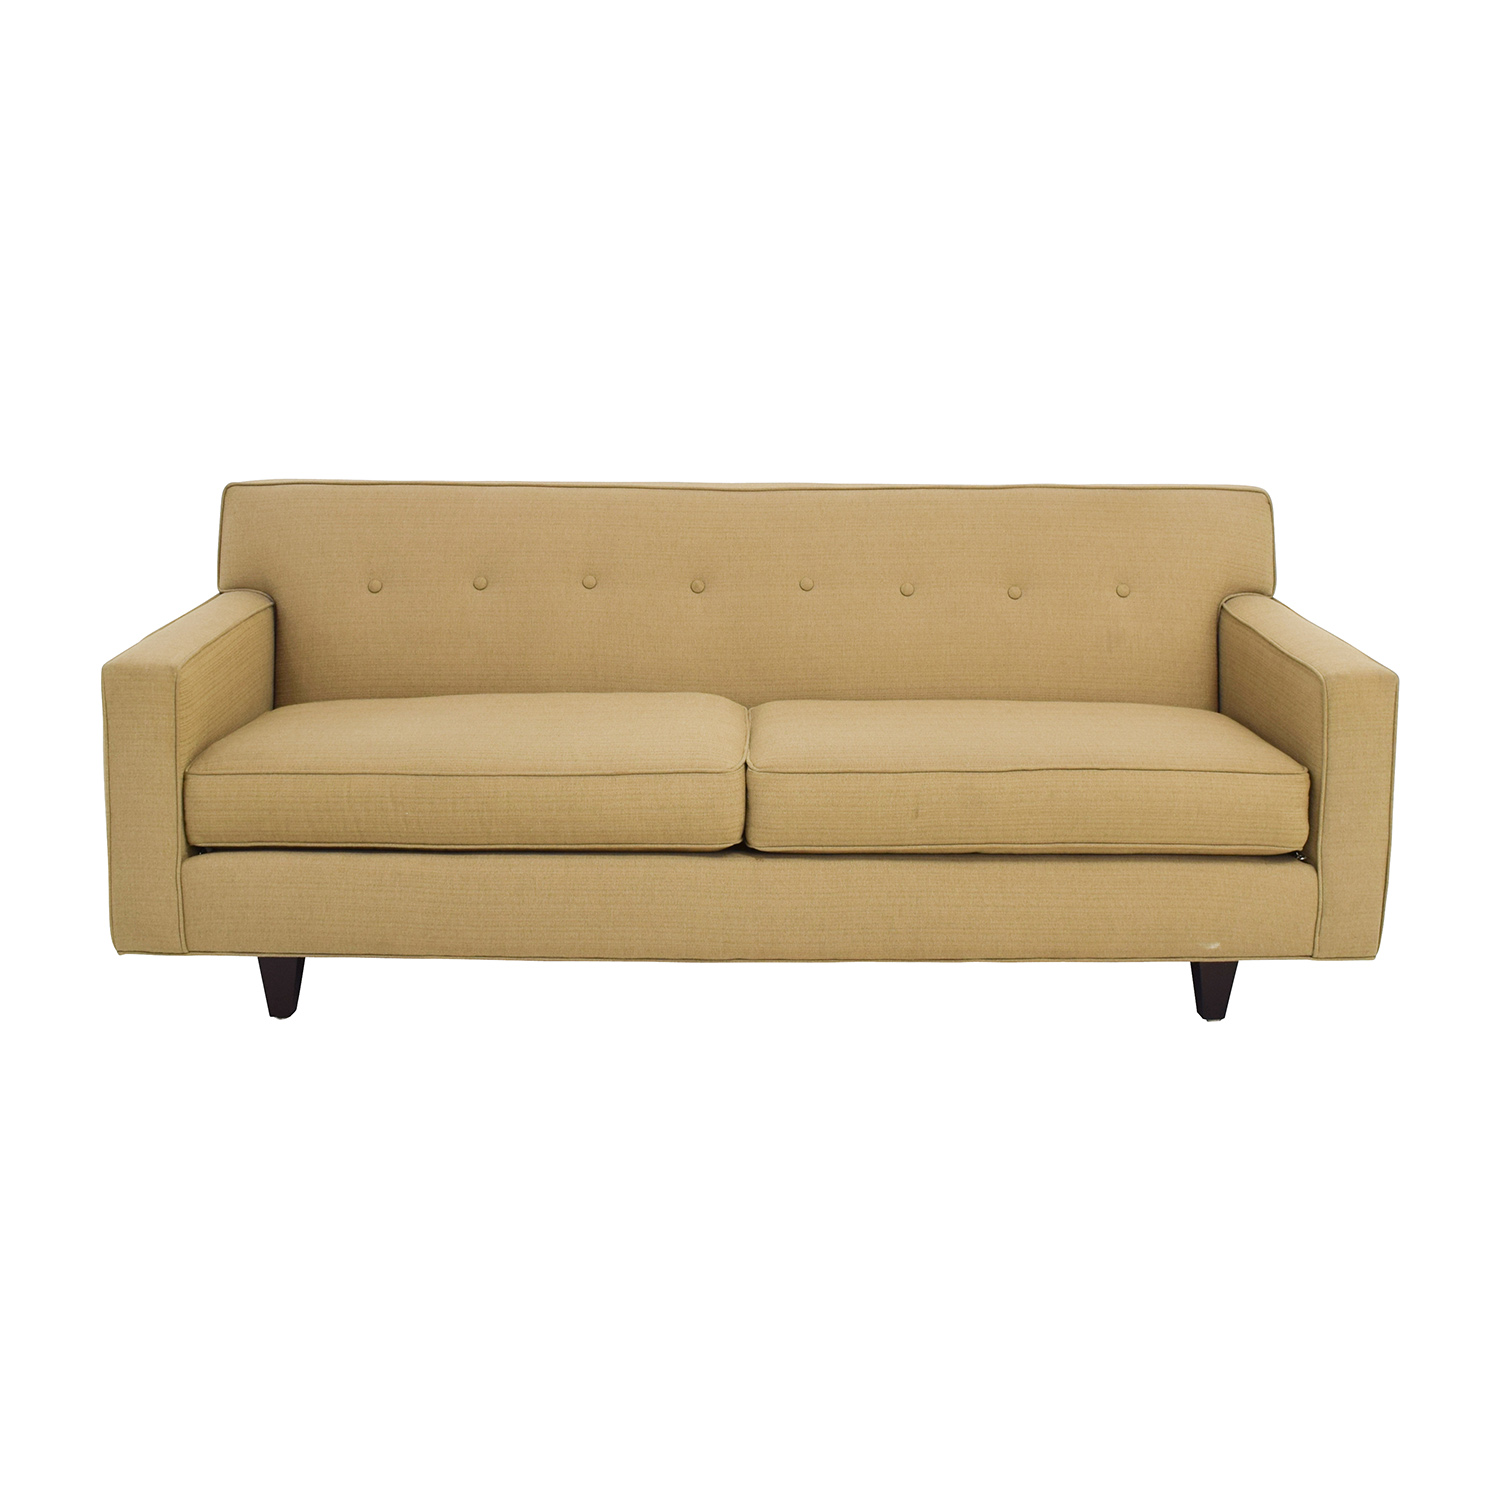 49 Off Rowe Furniture Contemporary Dorset Oatmeal Sofa Sofas